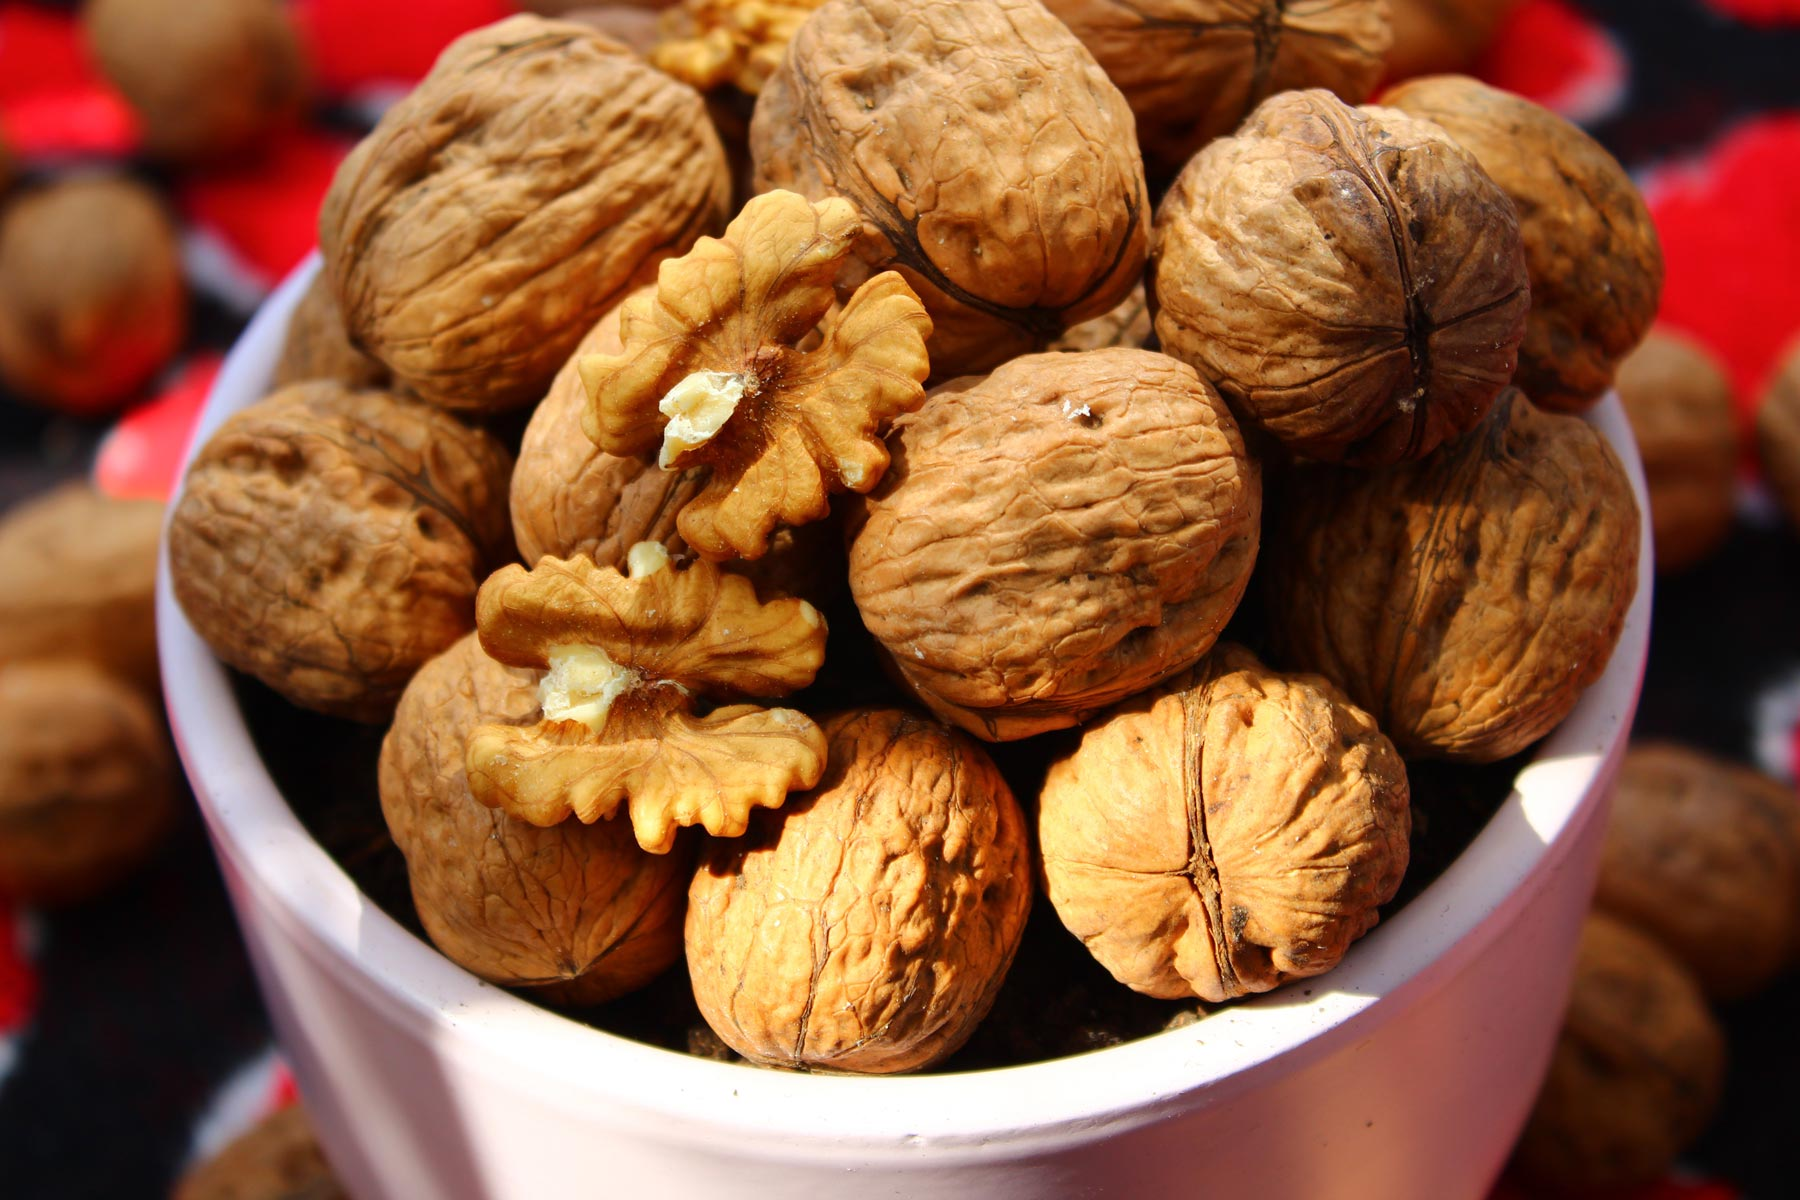 Walnuts are a great source of omega-3